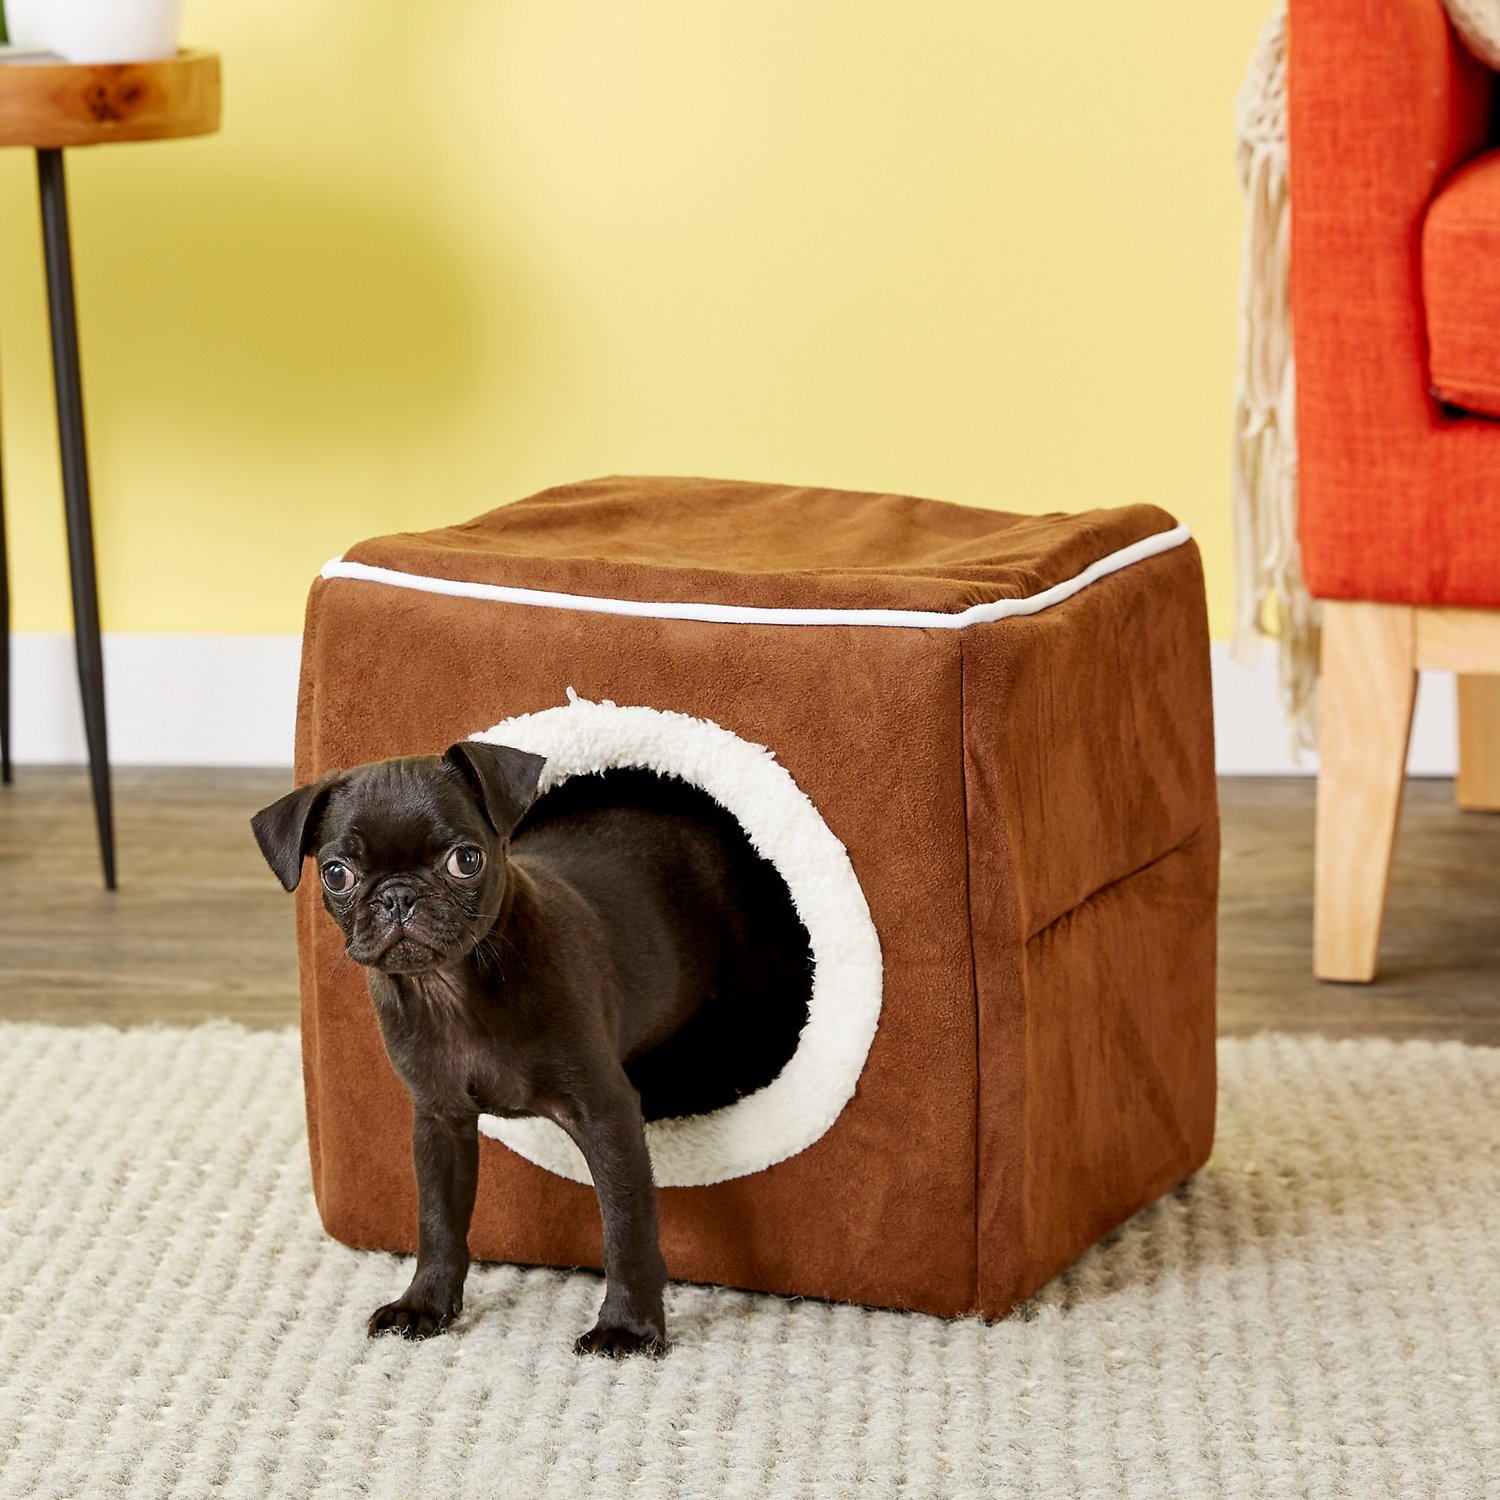 Enclosed Bed Google Search: Petmaker Cozy Cave Enclosed Cube Pet Bed, Dark Coffee